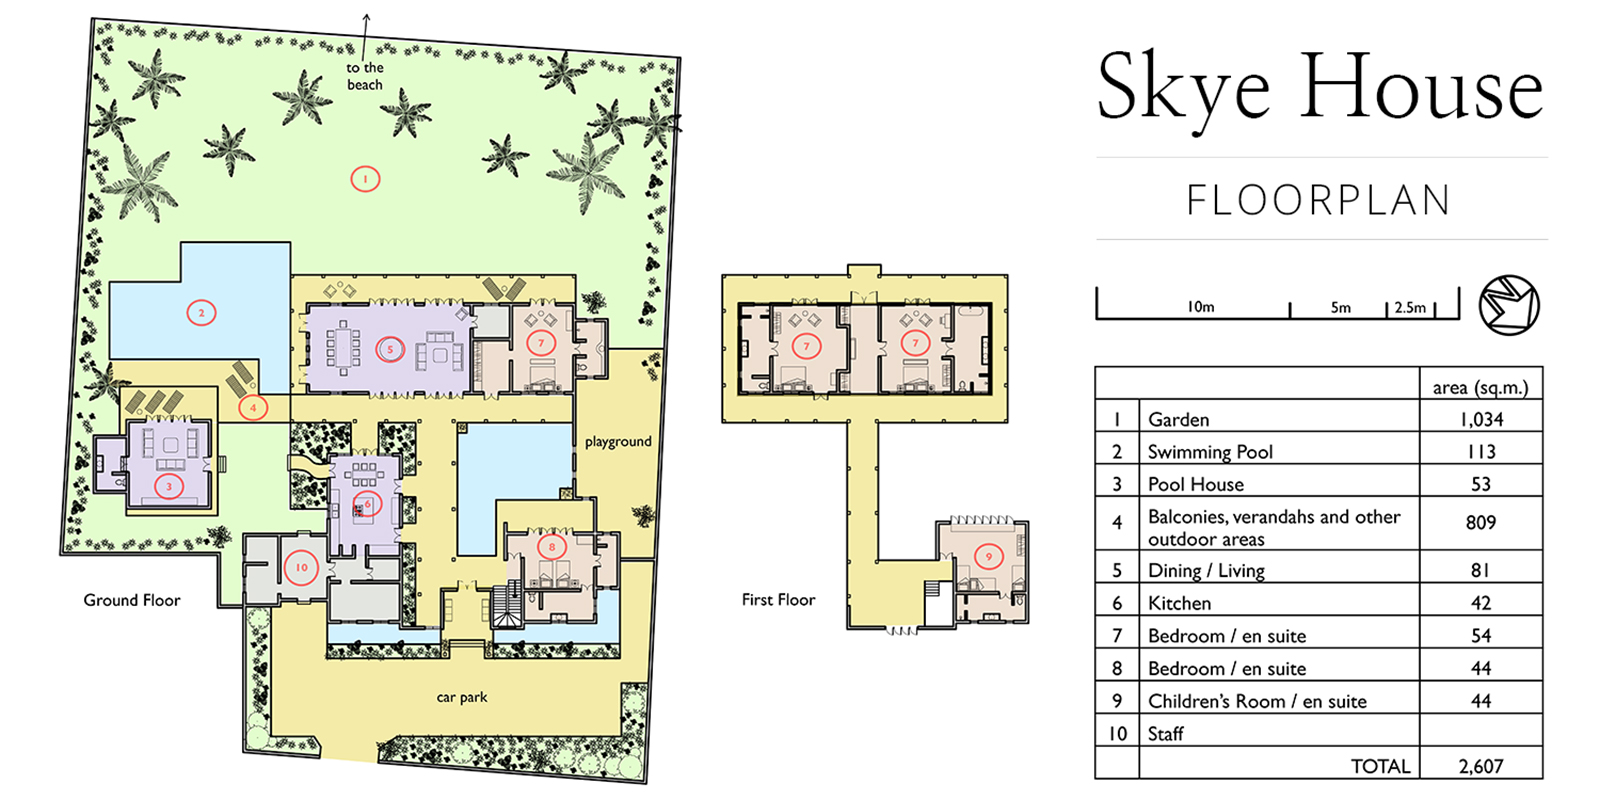 Skye House Floor Plan | Koggala, Sri Lanka